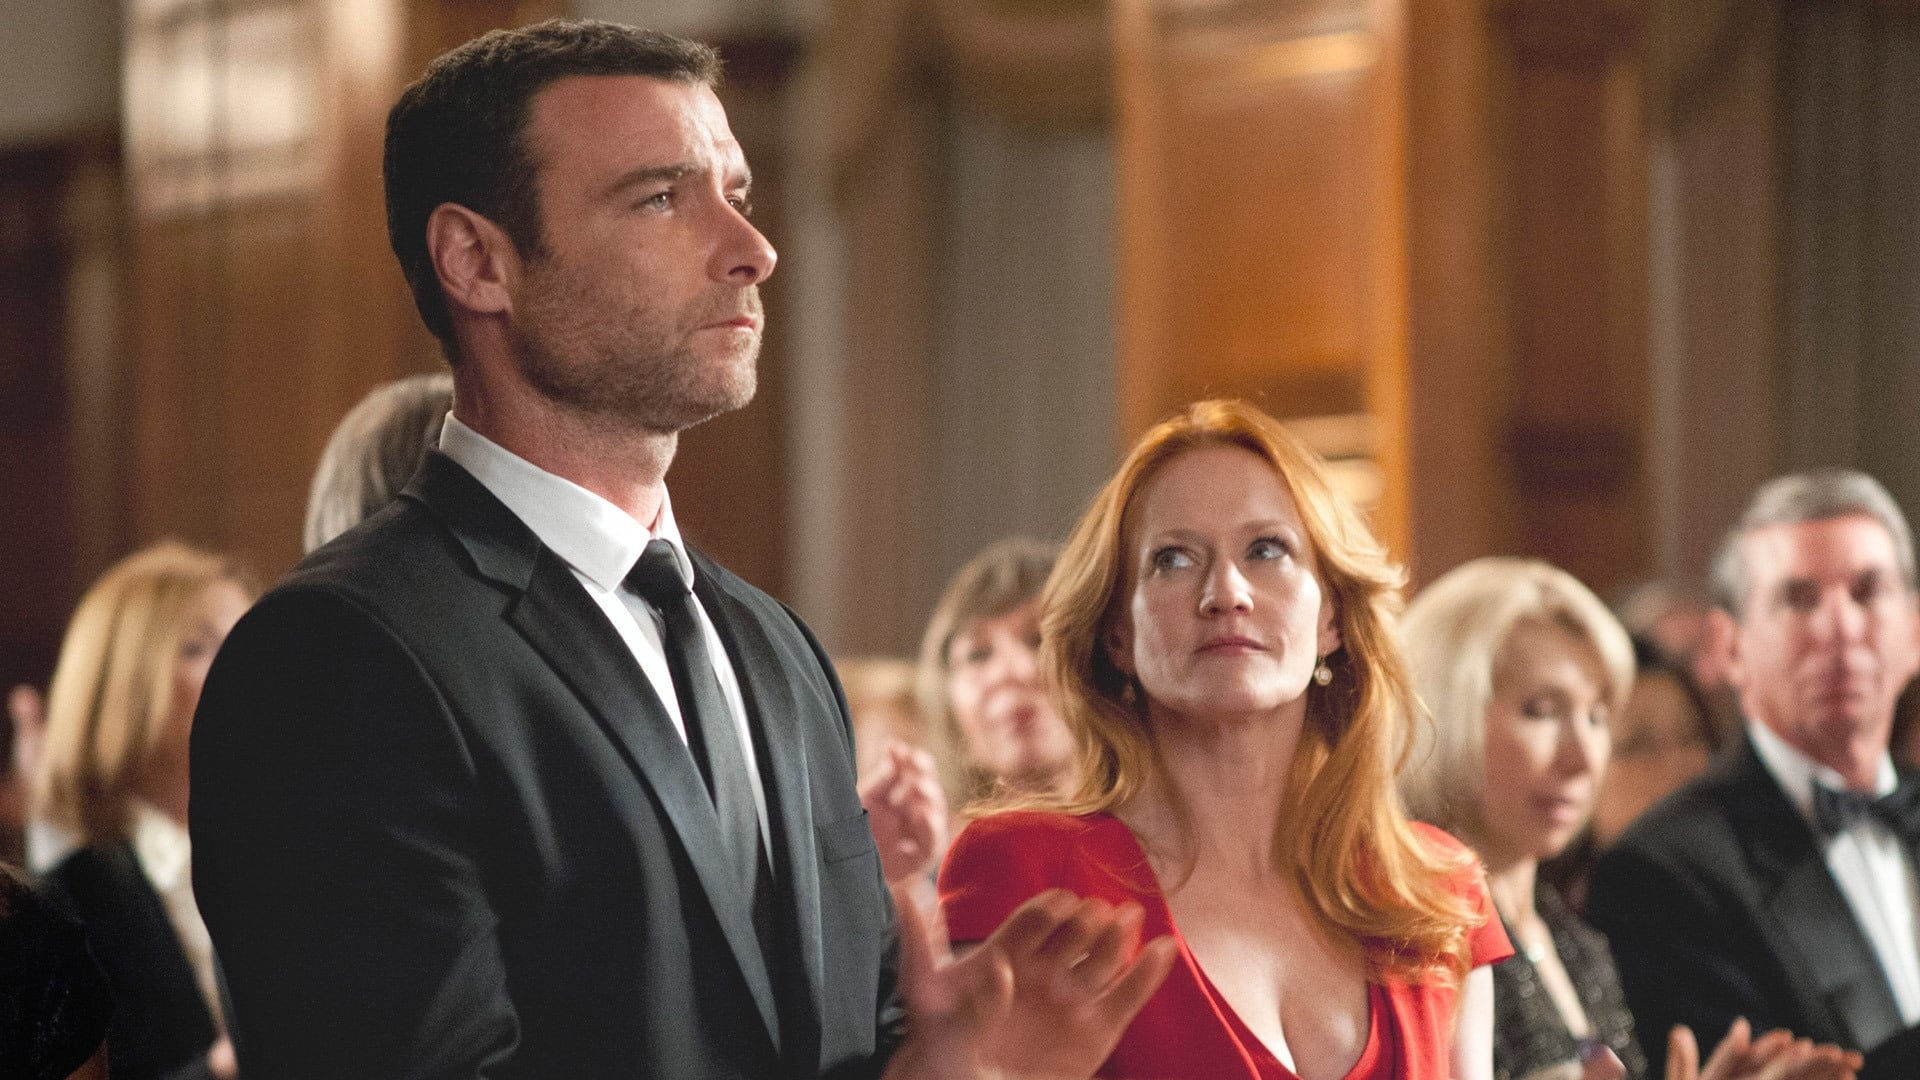 ray donovan 2013 saison 1 pisode 3 filmstreaming hd com. Black Bedroom Furniture Sets. Home Design Ideas